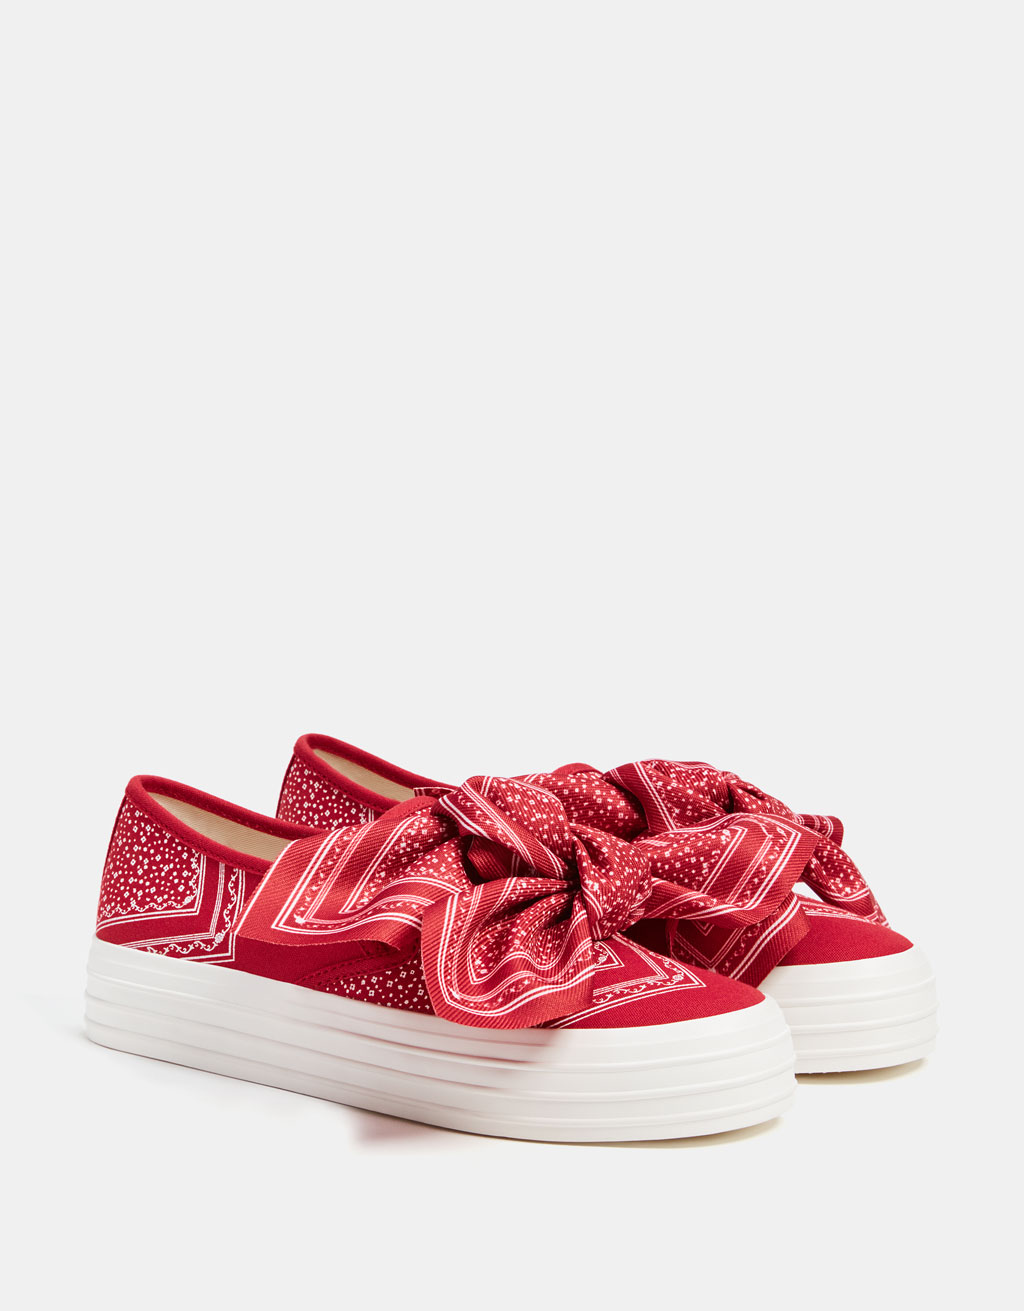 Red sneakers with bow detail